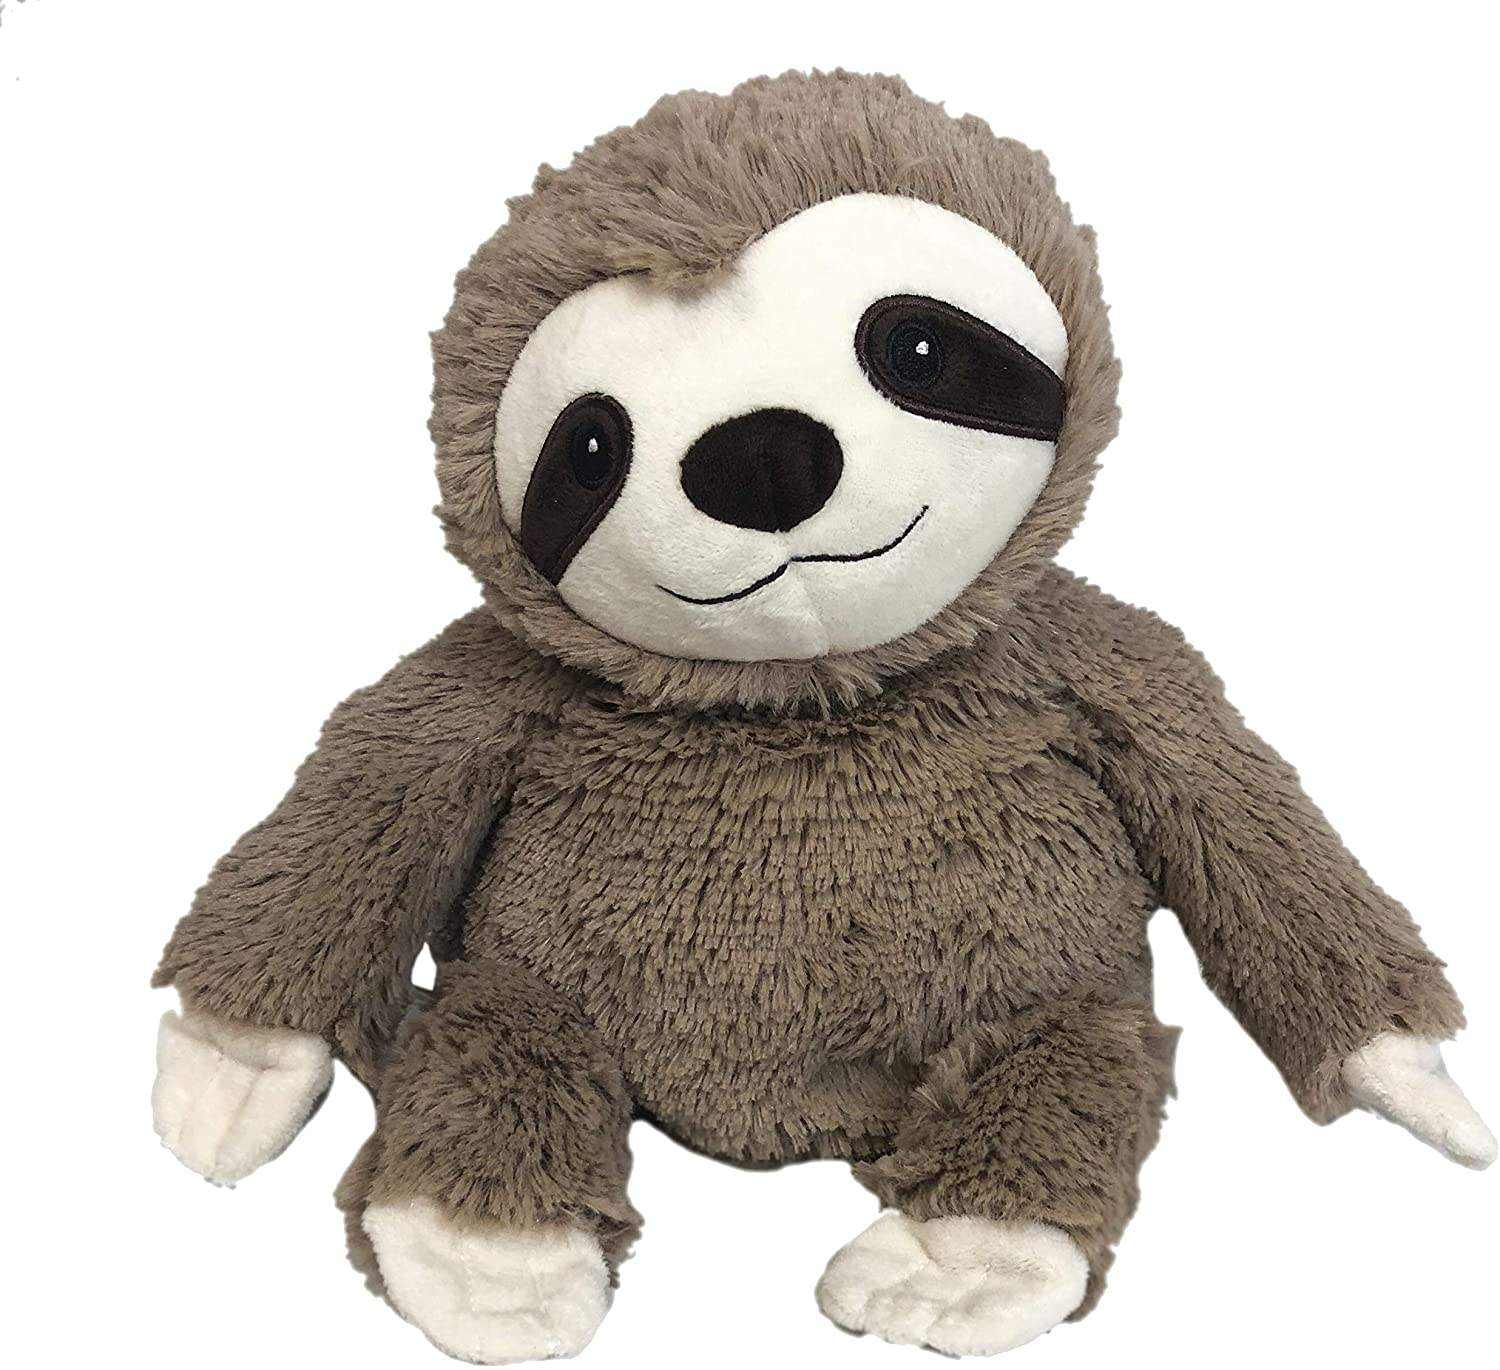 Microwaveable Olifant Knuffel Microwavable Cuddle <span class=keywords><strong>Speelgoed</strong></span> Microwaveable Knuffel